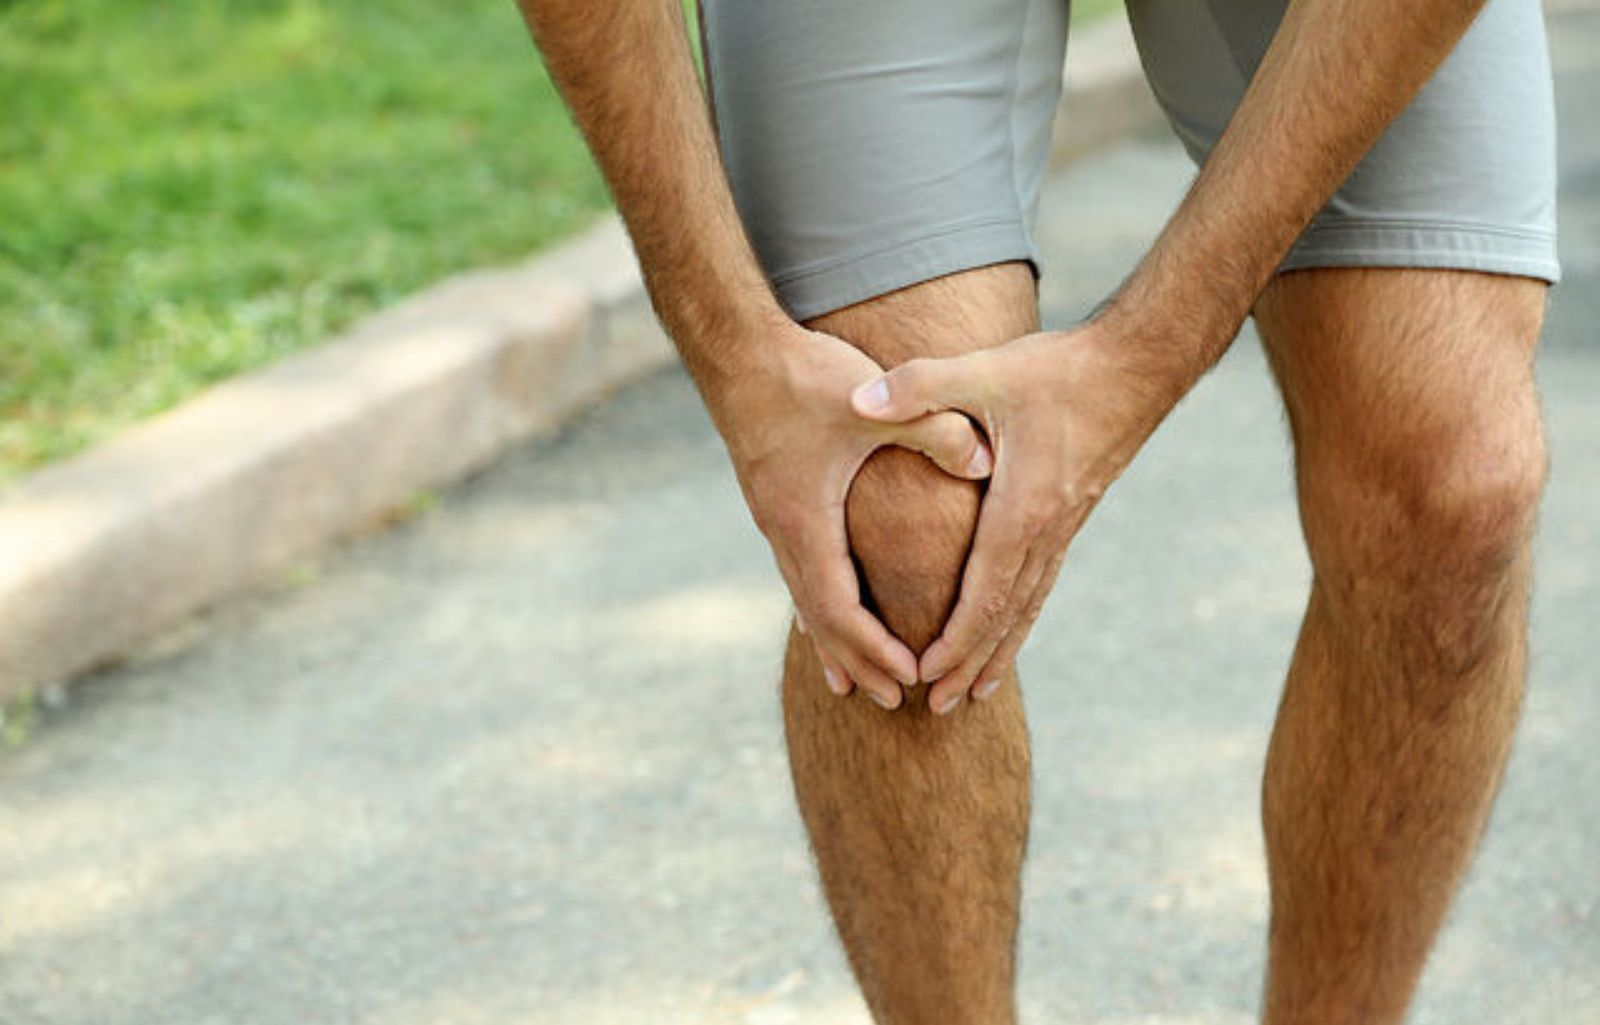 https://cdn2.hubspot.net/hubfs/2470171/blog/Knee%20Pain.jpg Feature Image